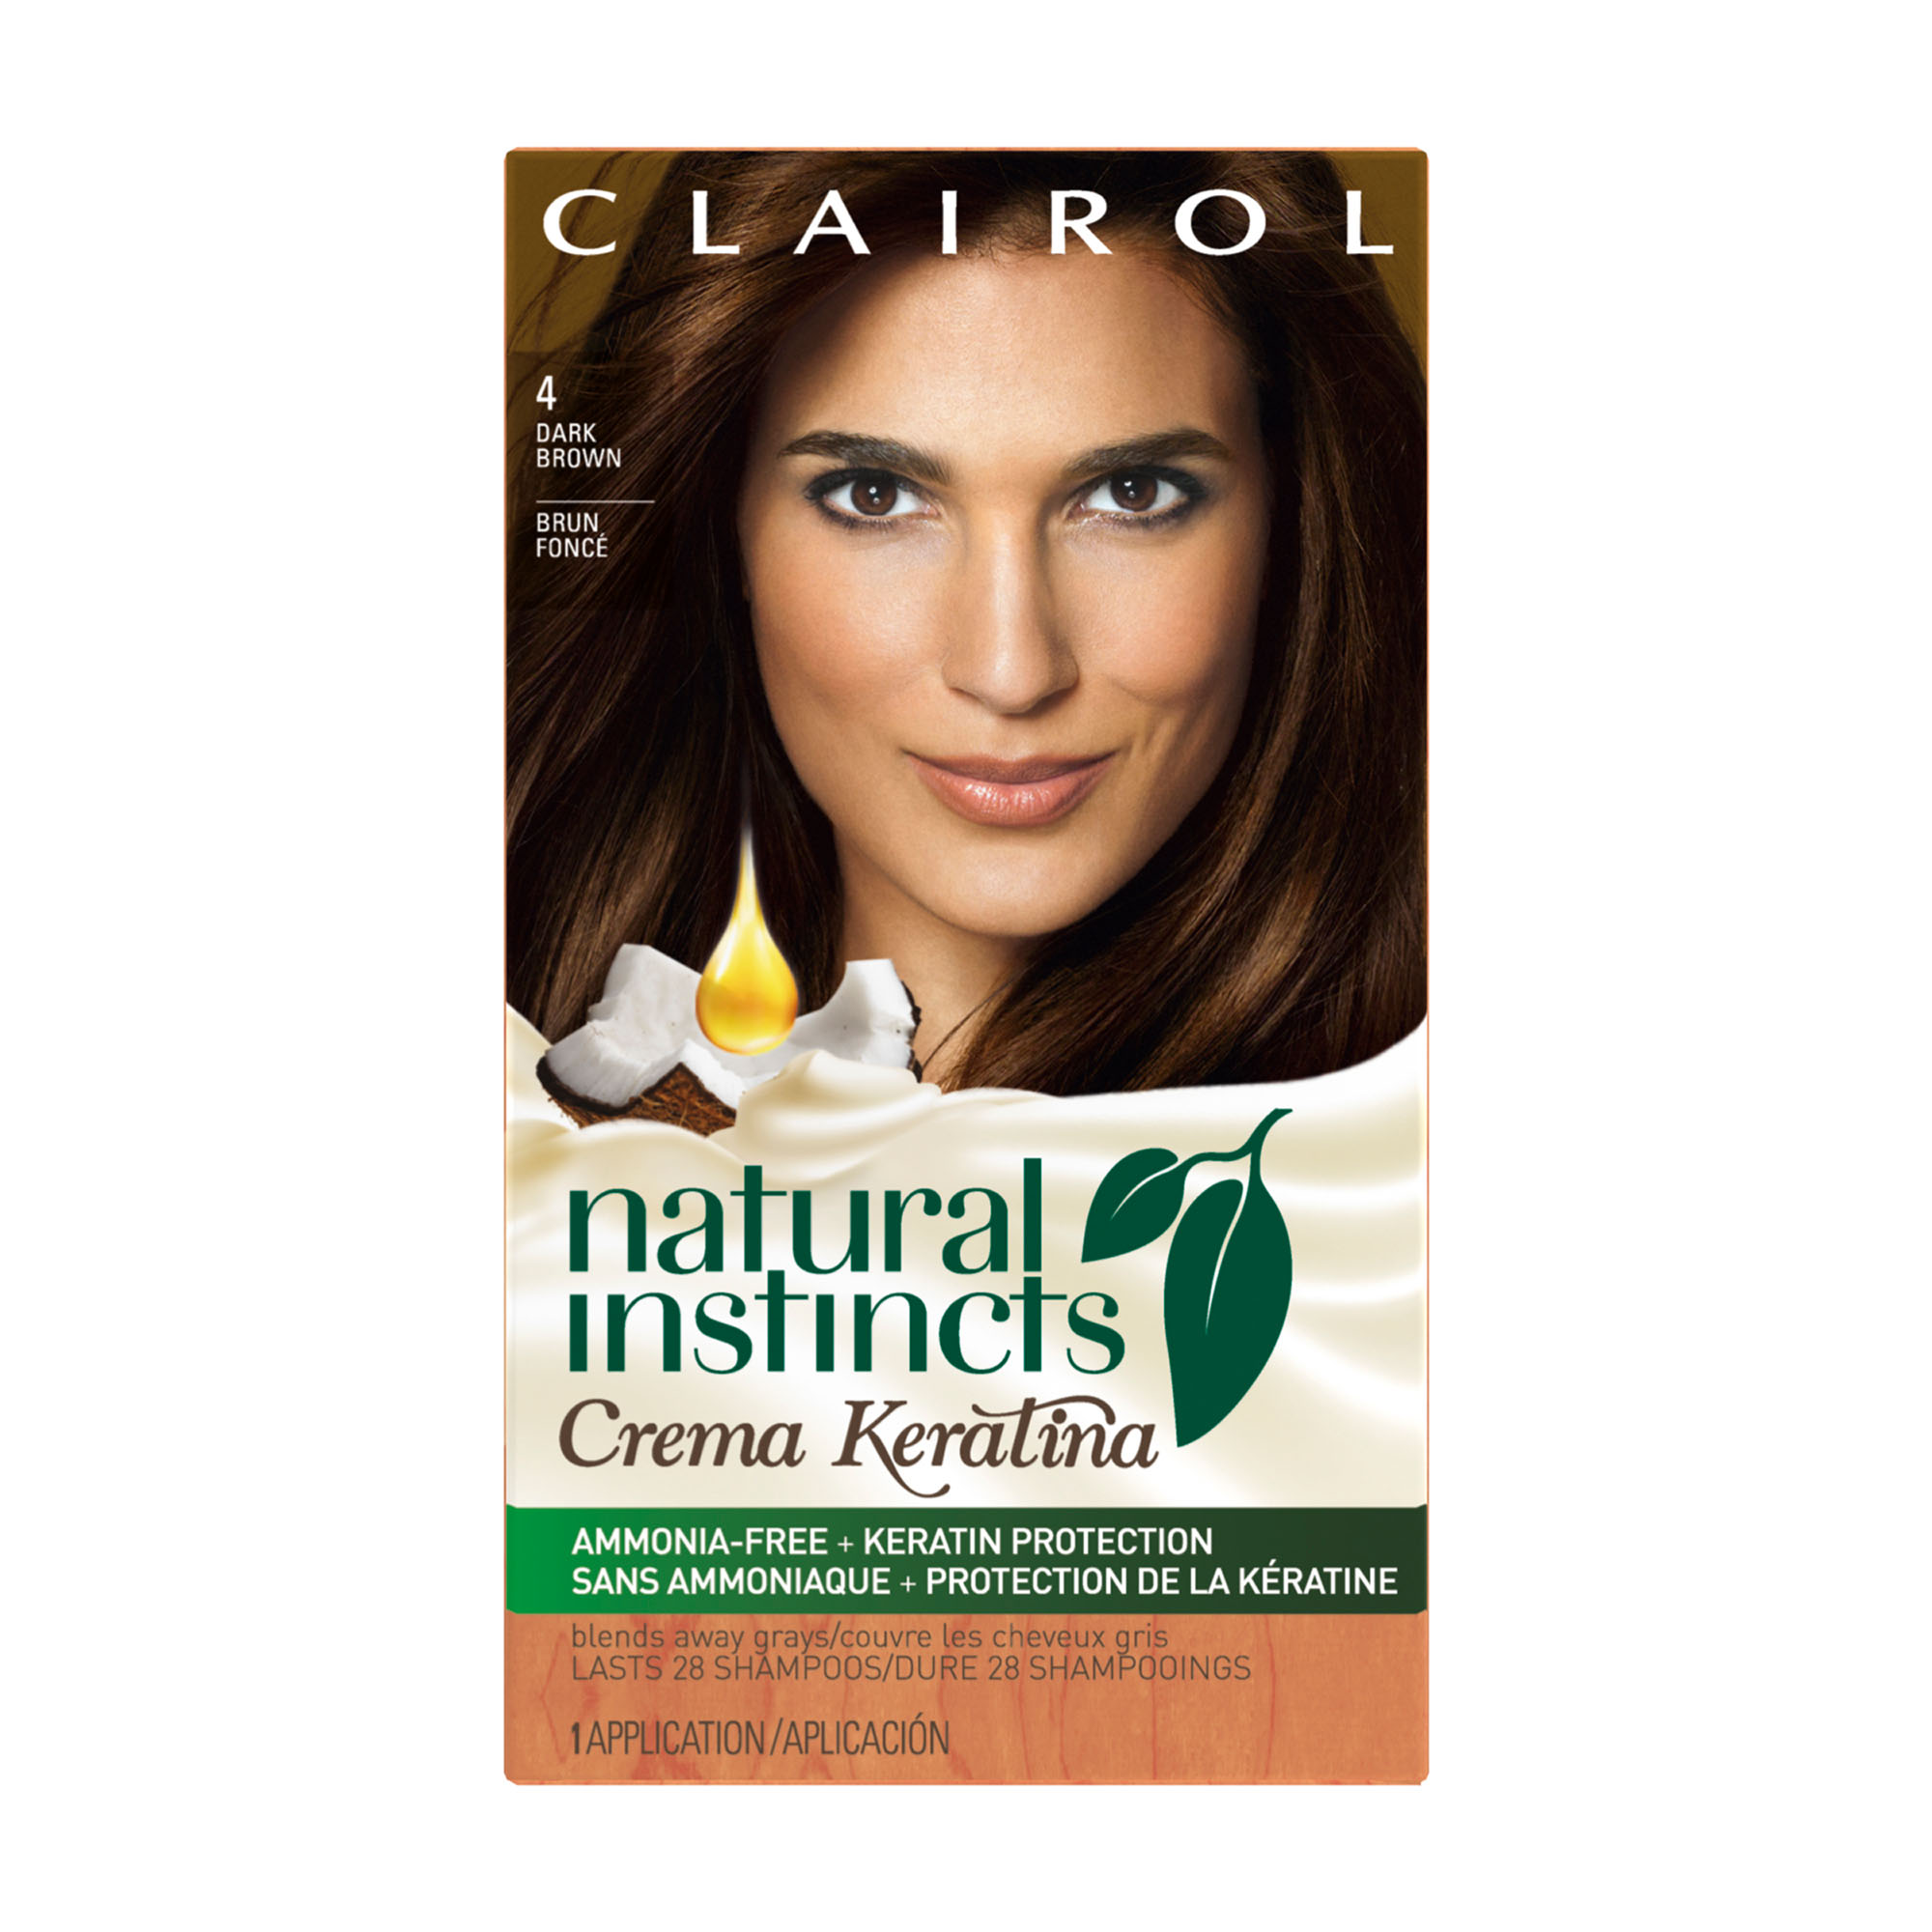 Clairol Natural Instincts Crema Keratina Hair Color, 4 Dark Brown/ Coffee Crème